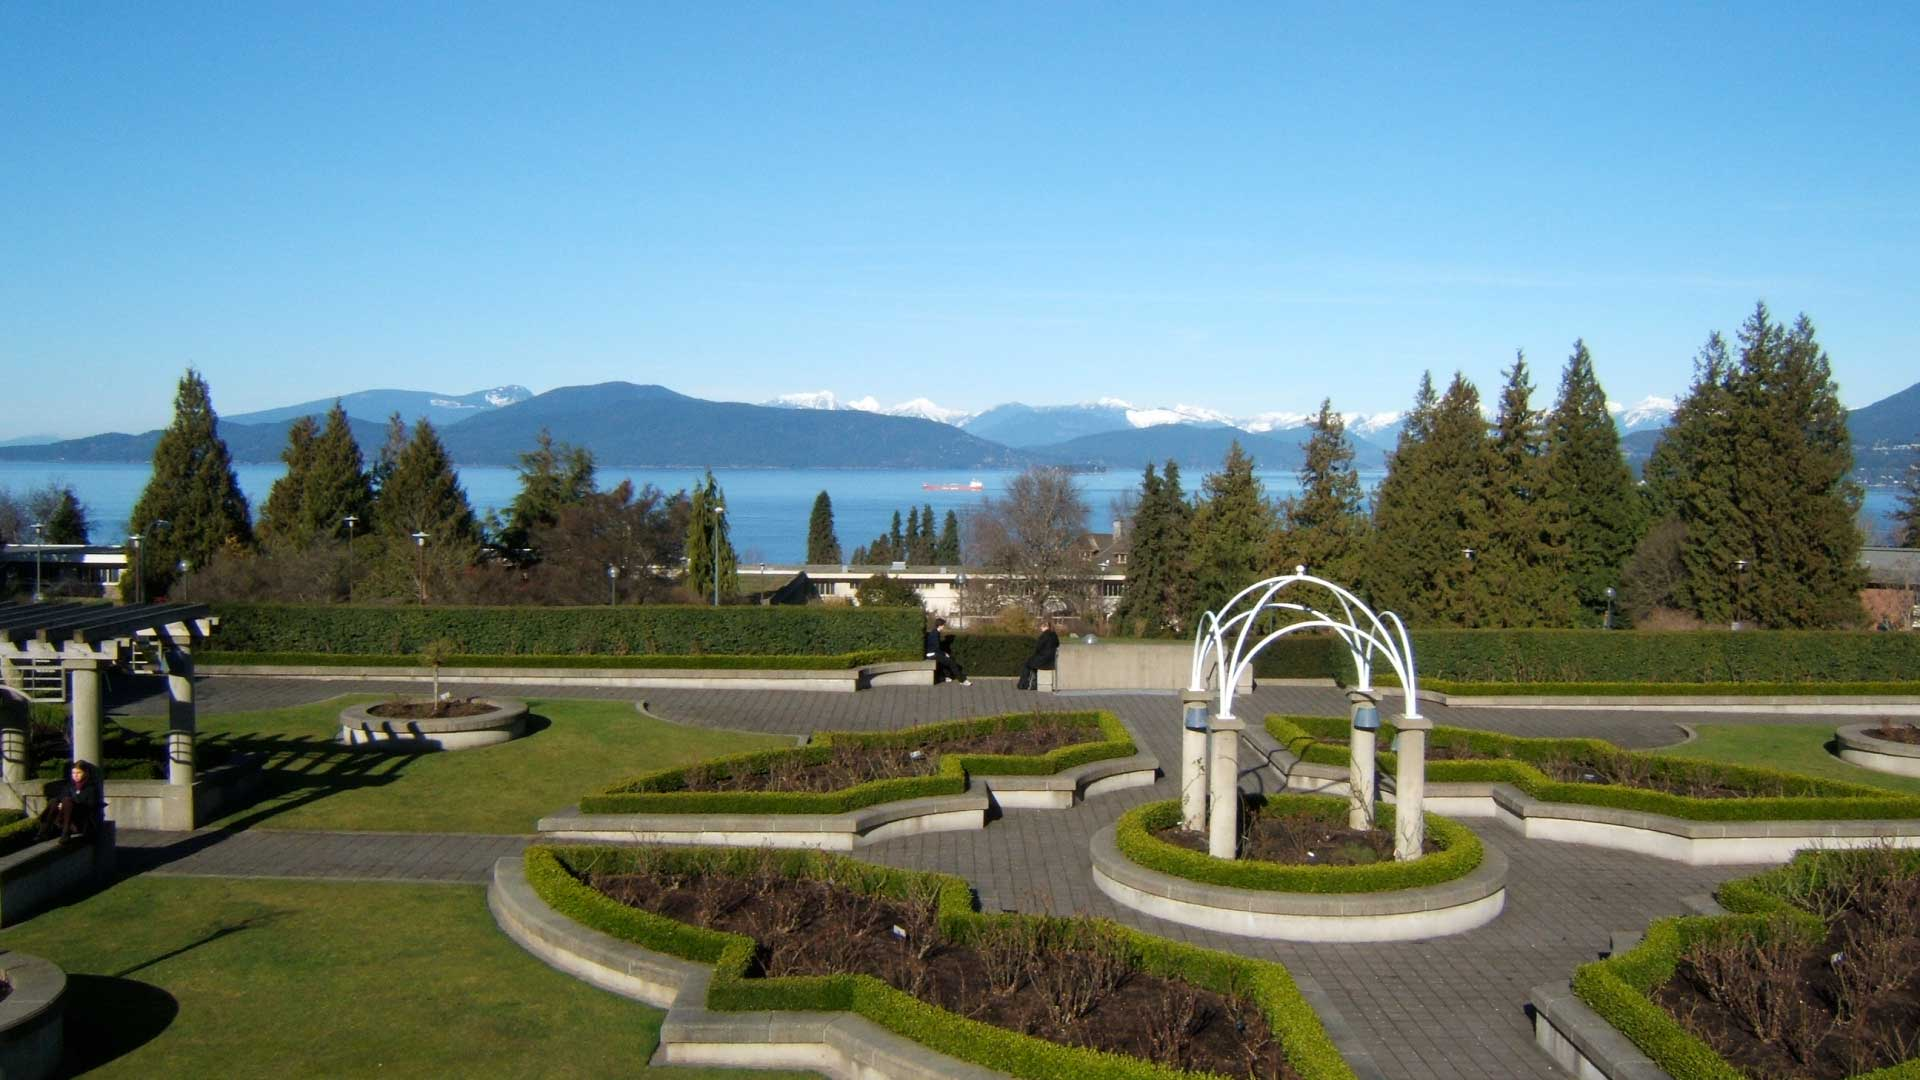 View from UBC's rose garden overlooking the ocean and mountains